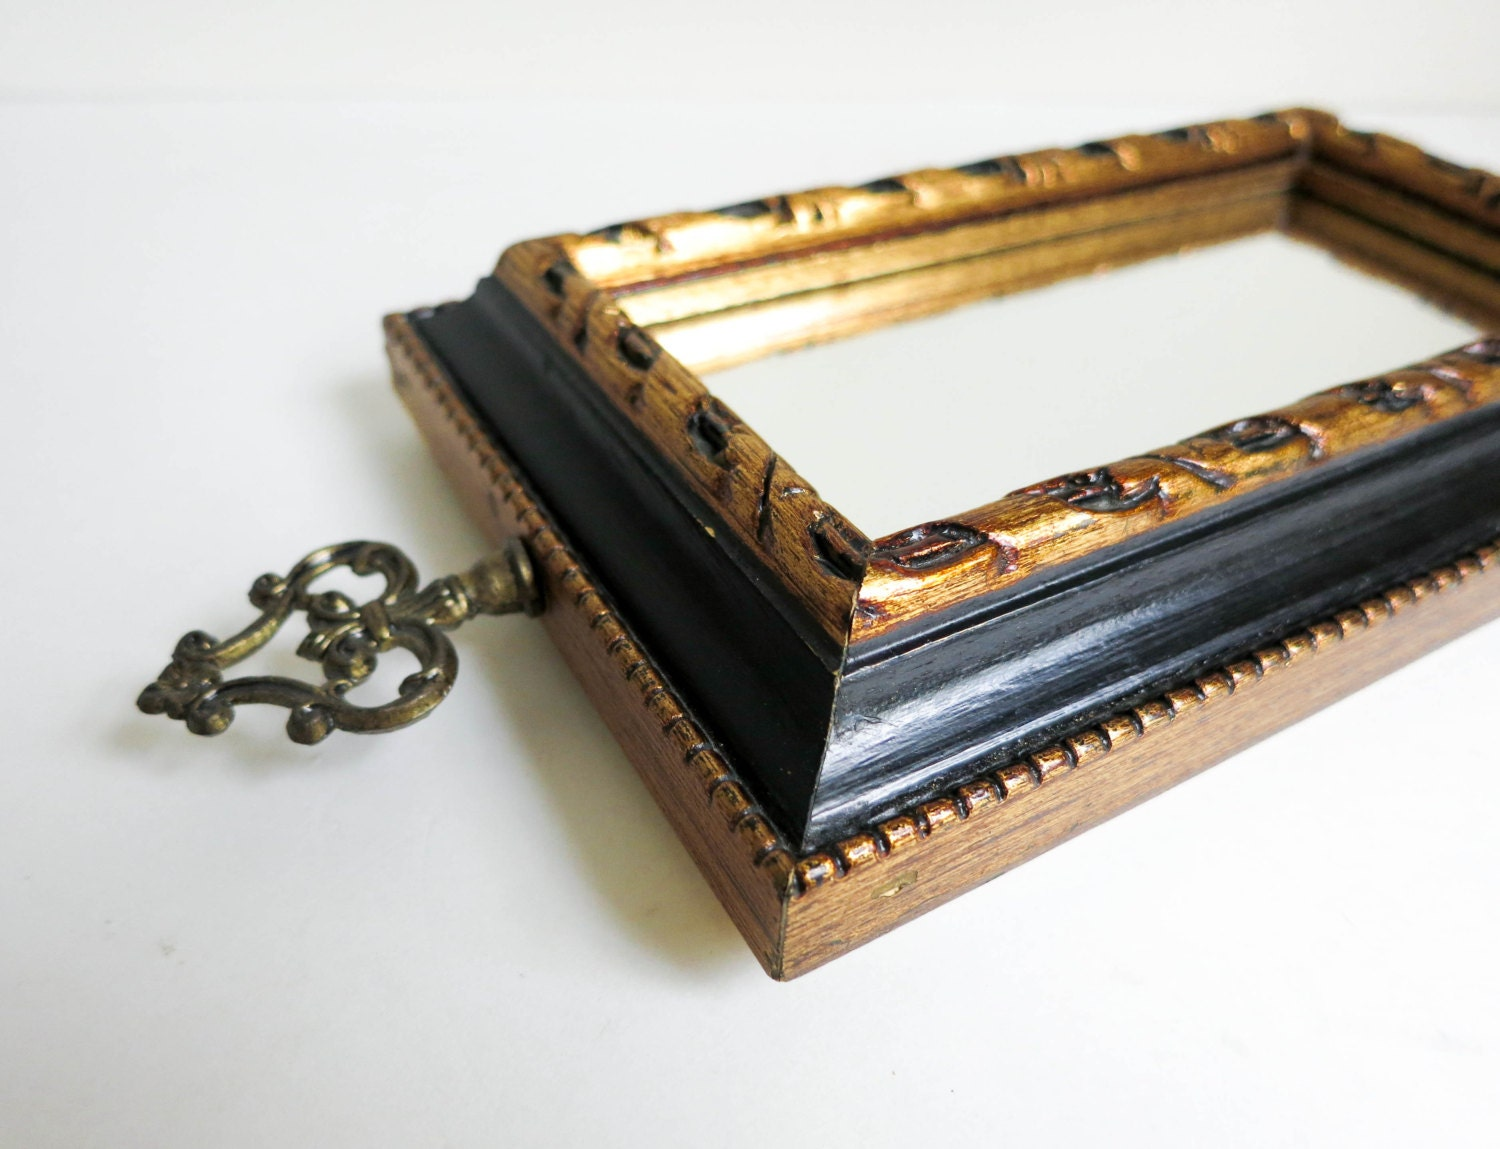 Small Black Decorative Mirrors: Small Vintage Black & Gold Mirror With Decorative Finial Top